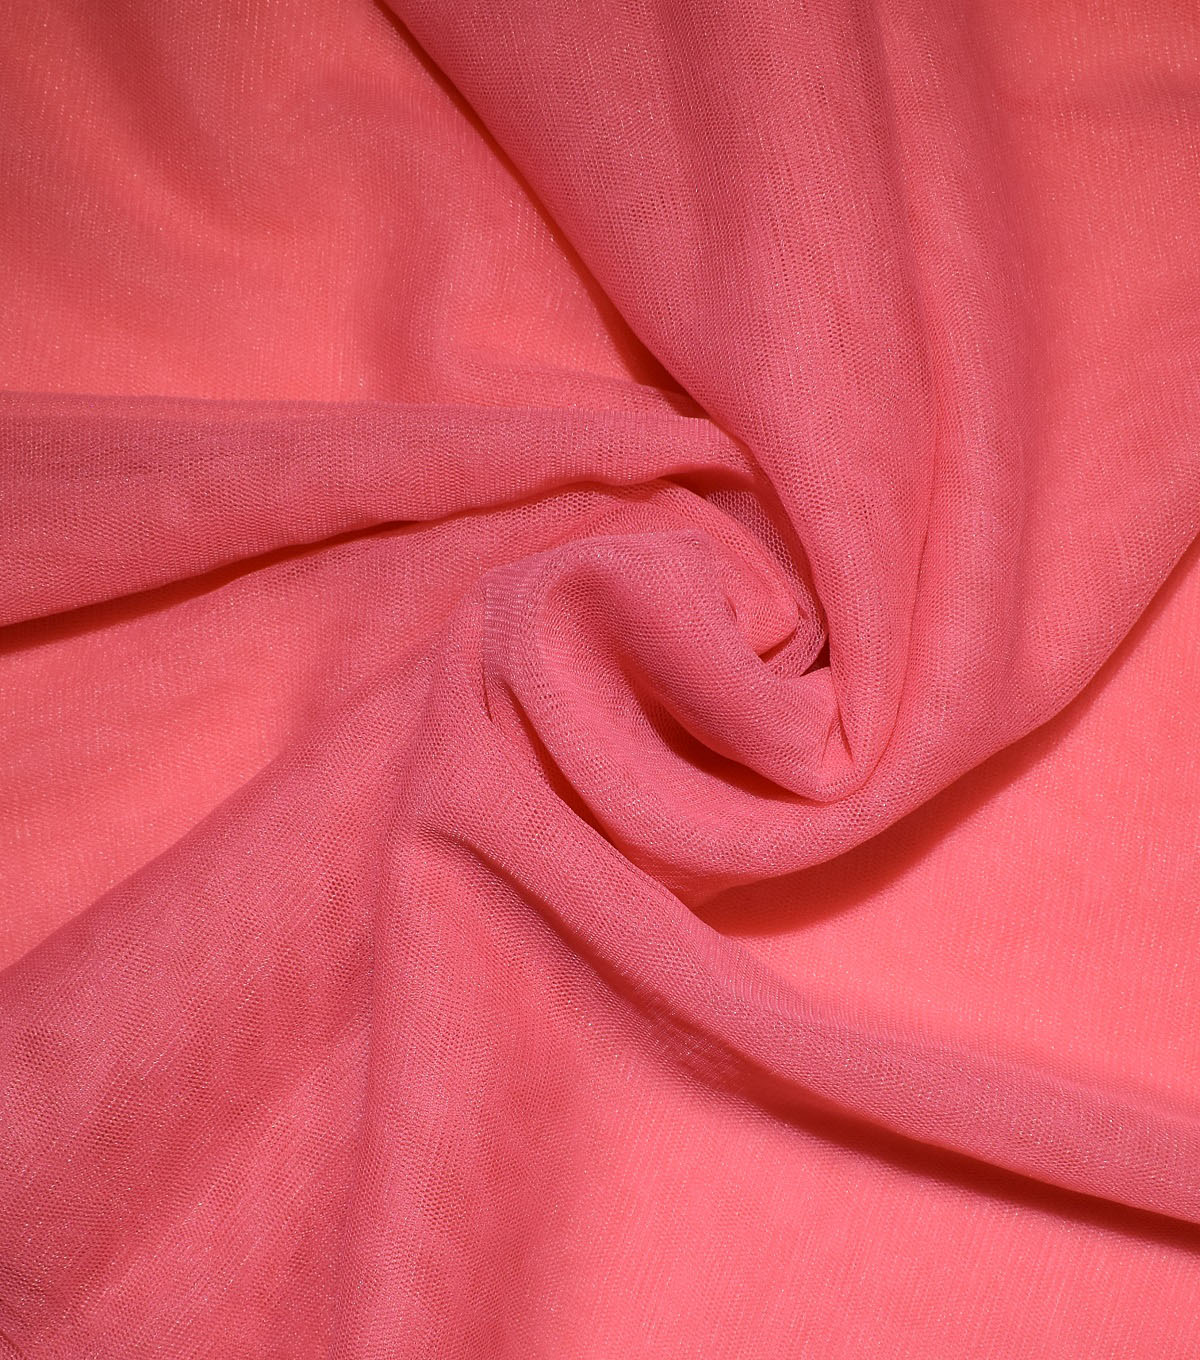 Casa Collection Solid Tulle Fabric 57\u0027\u0027, Cayenne